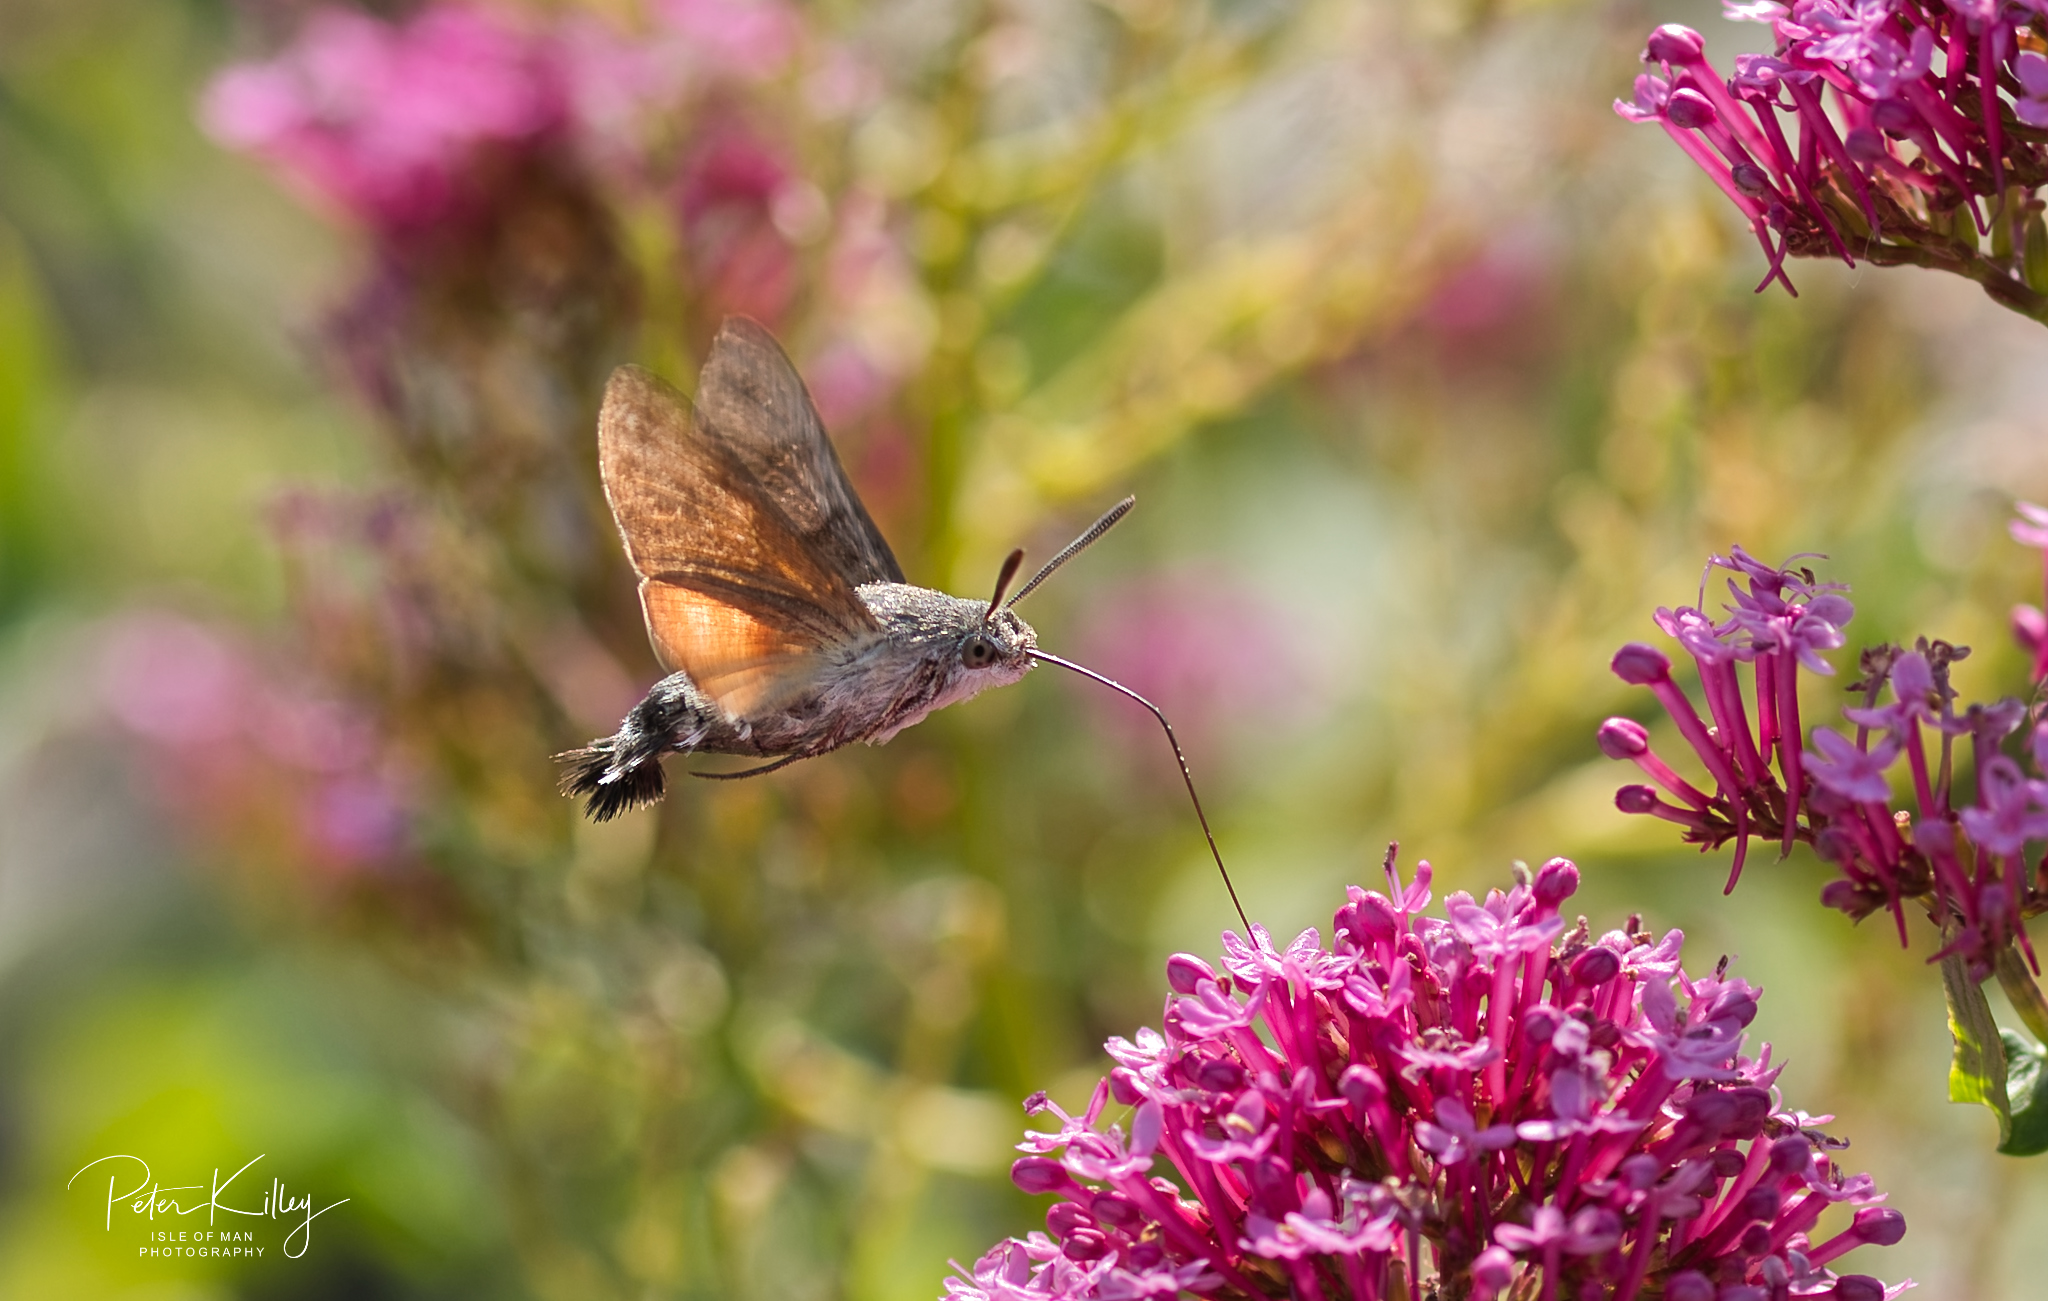 Hummingbird moth - © Peter Killey - www.manxscenes.com